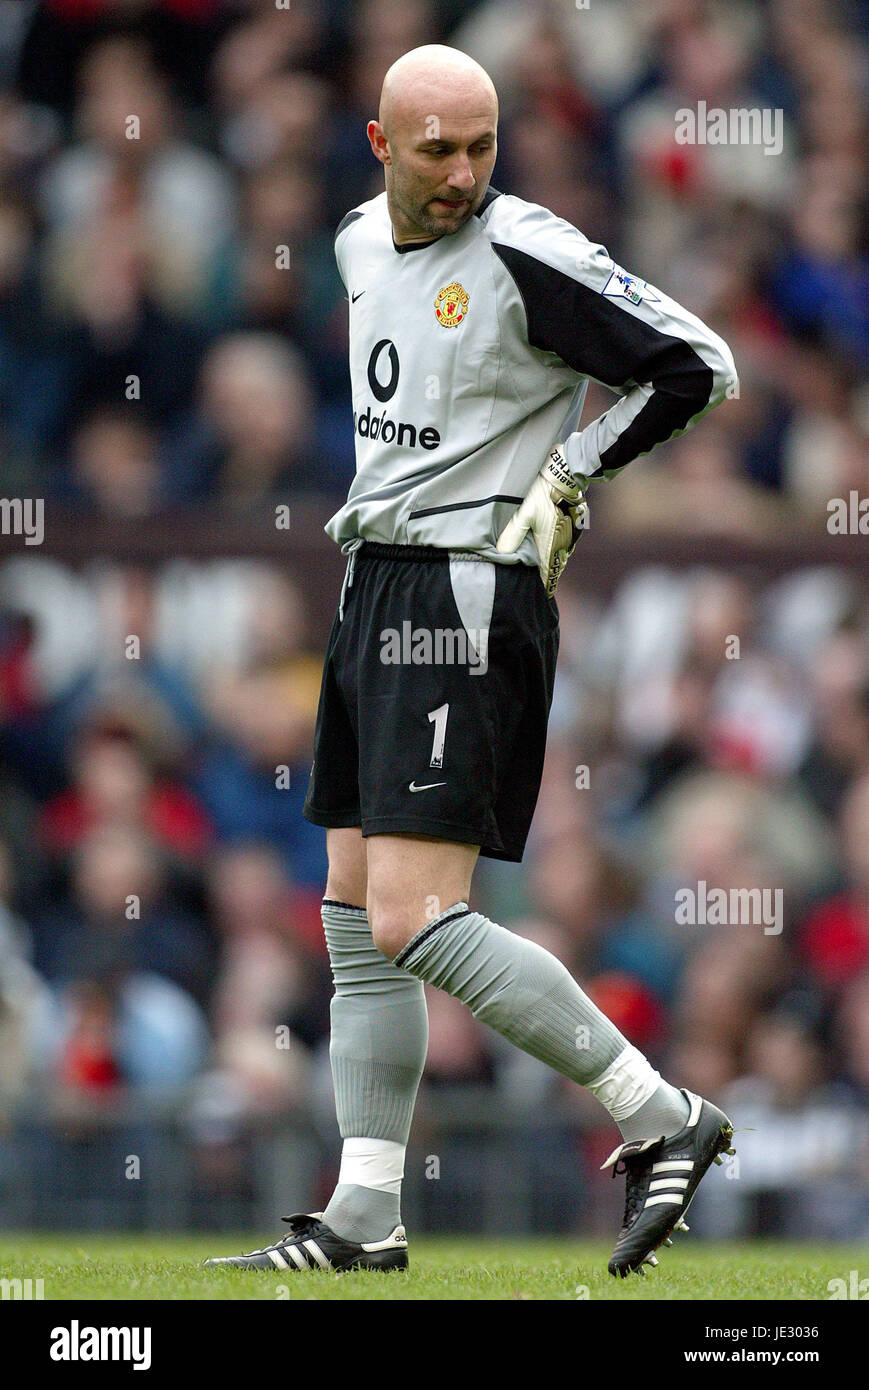 db78aadea3c FABIEN BARTHEZ MANCHESTER UNITED FC OLD TRAFFORD MANCHESTER EN ANGLETERRE  23 Novembre 2002 Photo Stock